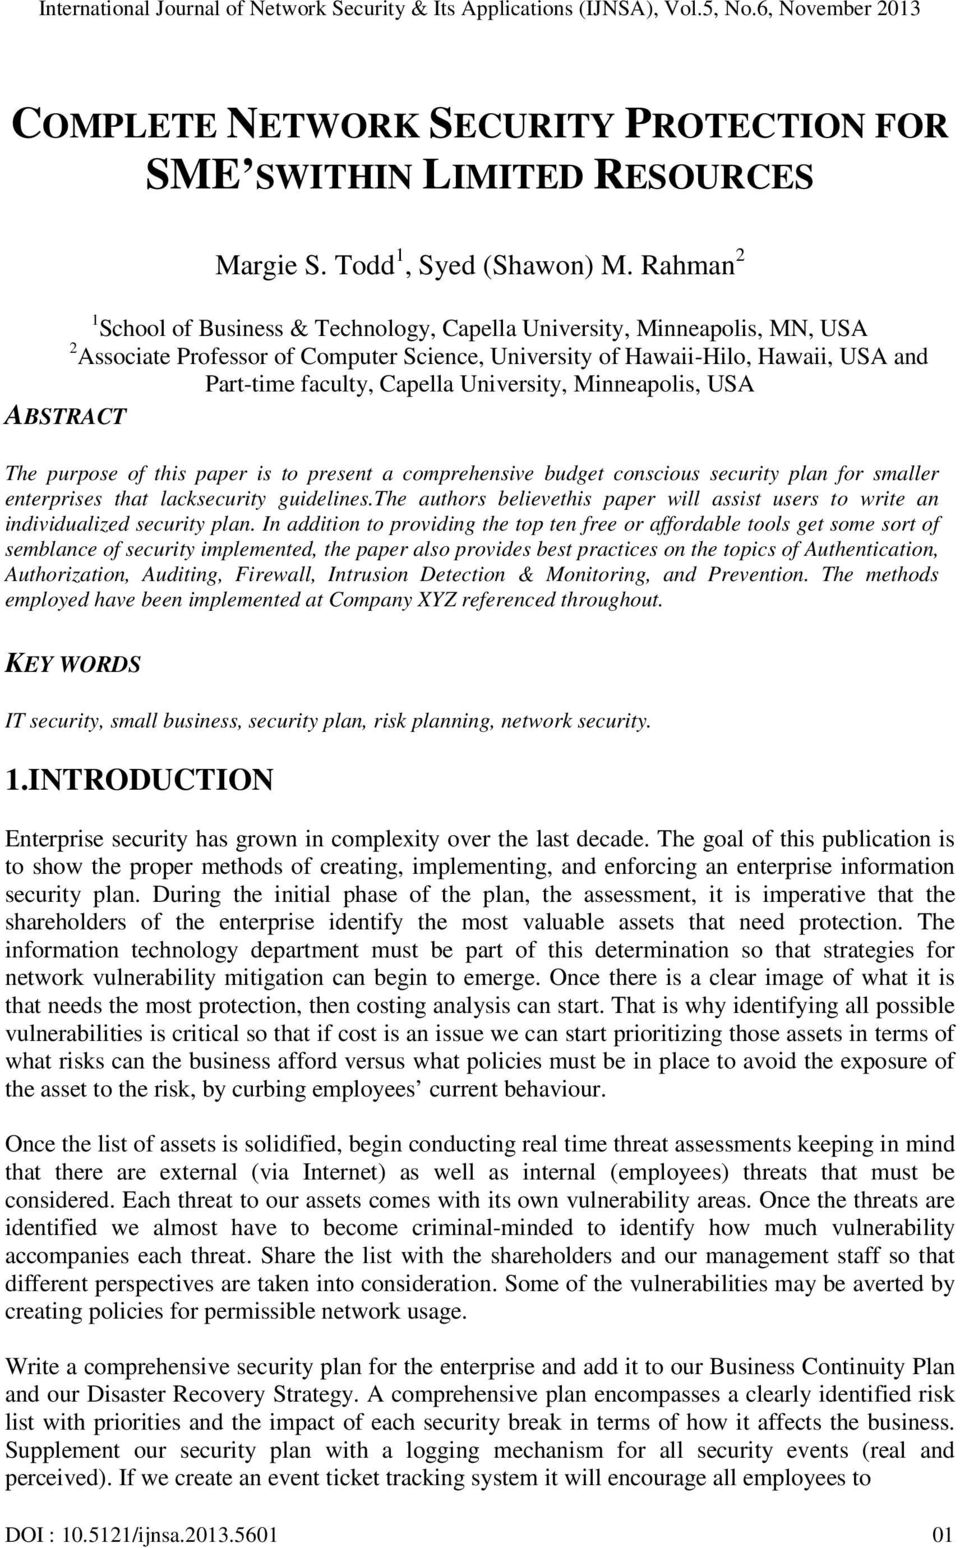 University, Minneapolis, USA ABSTRACT The purpose of this paper is to present a comprehensive budget conscious security plan for smaller enterprises that lacksecurity guidelines.